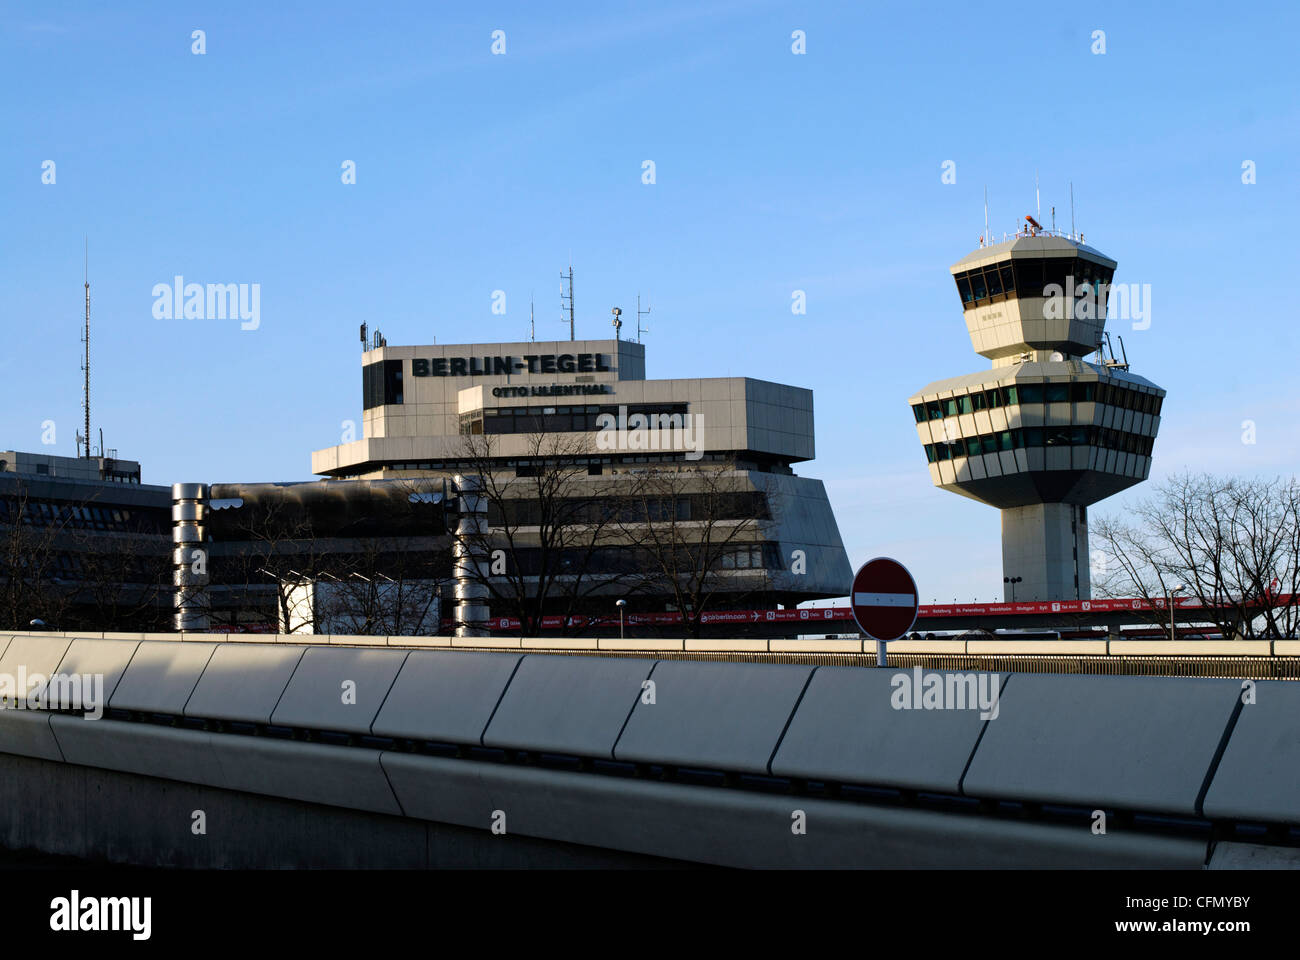 The Airport Berlin-Tegel, Otto Lilienthal Stock Photo